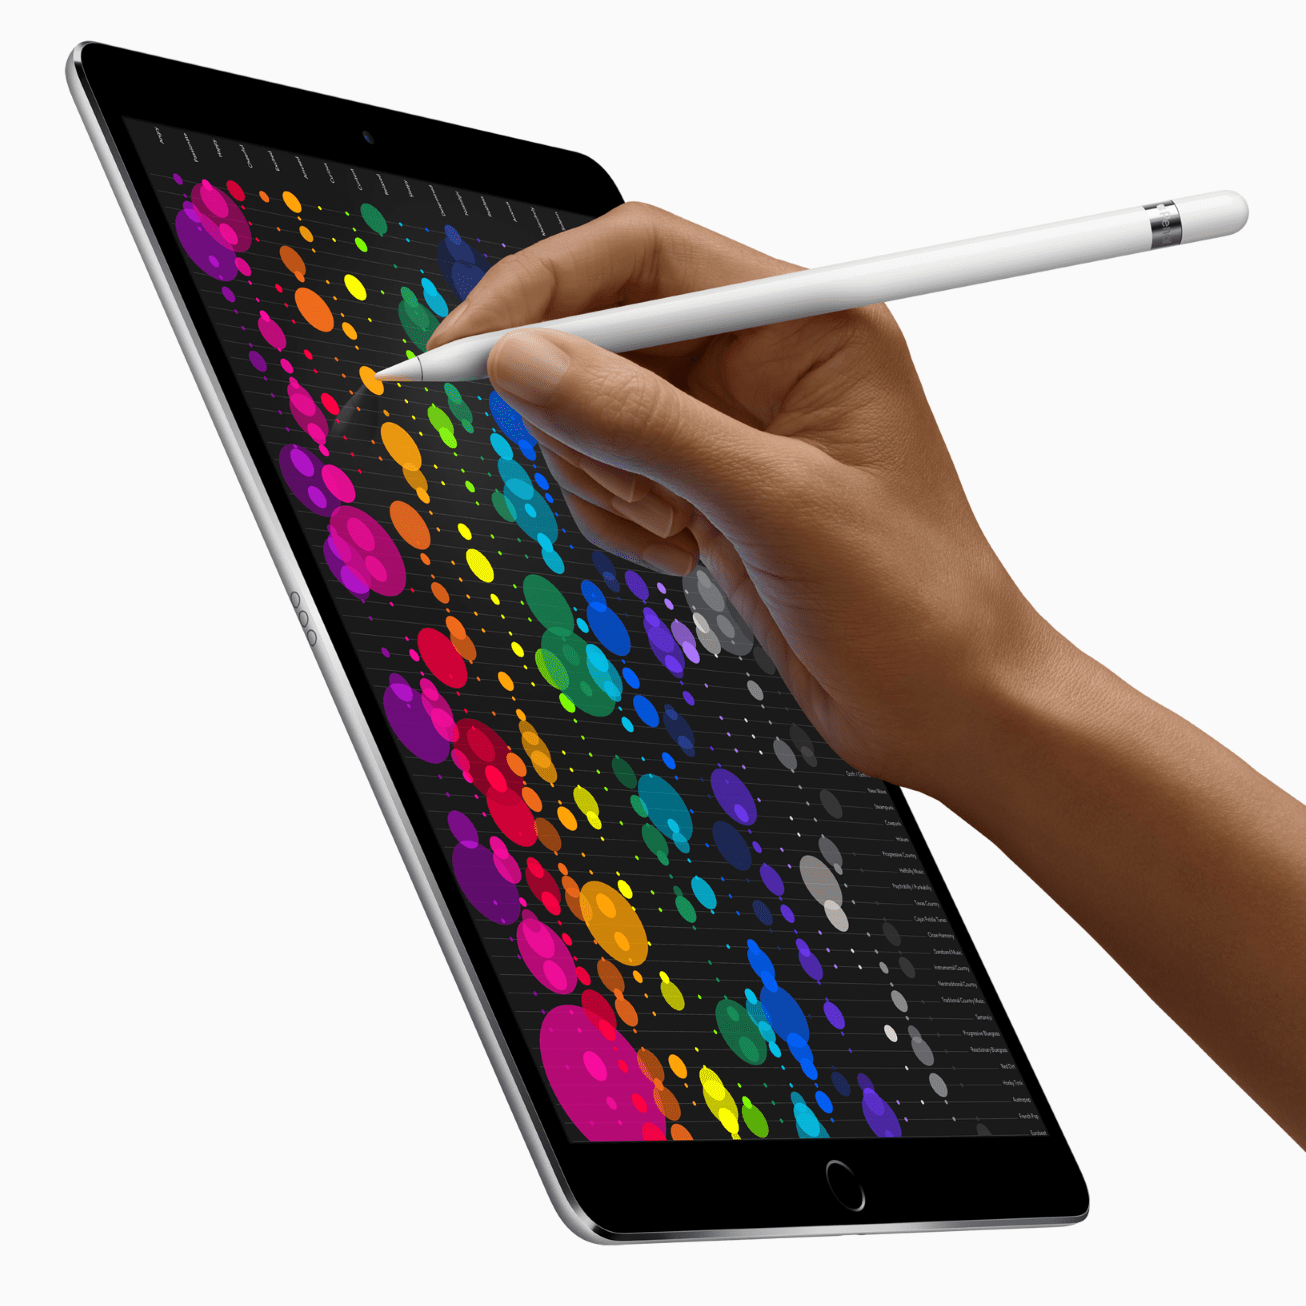 A person draws on the 12.9-inch iPad Pro with a stylus